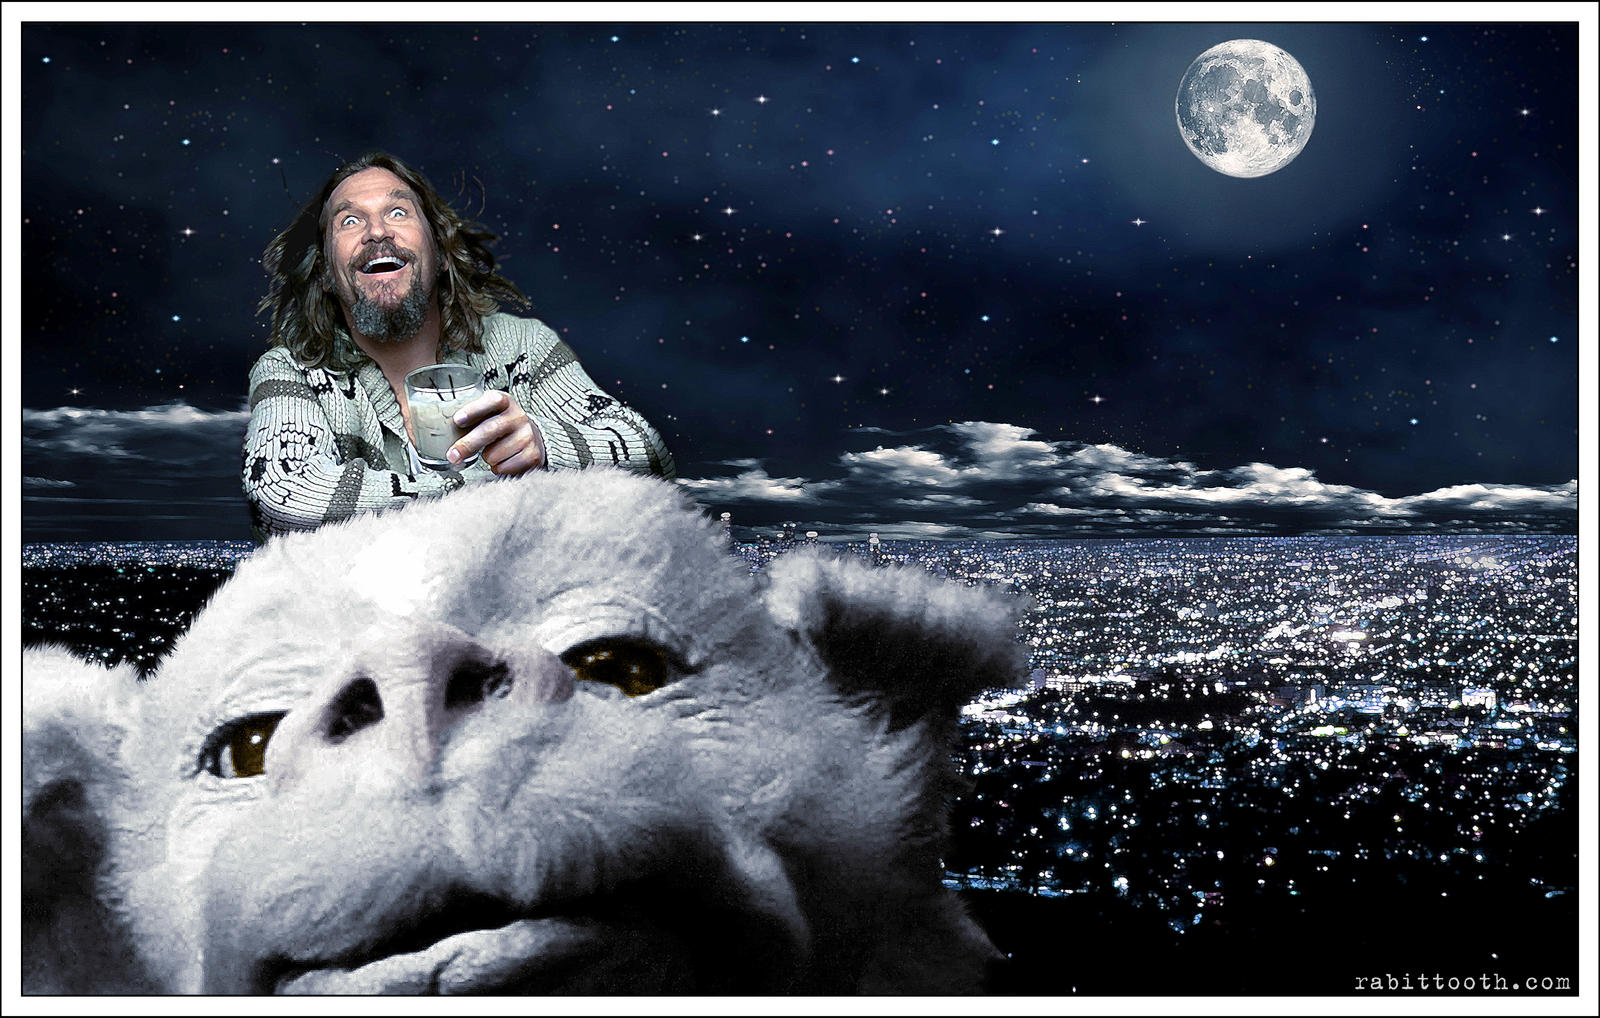 Dude Riding Falcor (Lebowski / Neverending Story) by Rabittooth